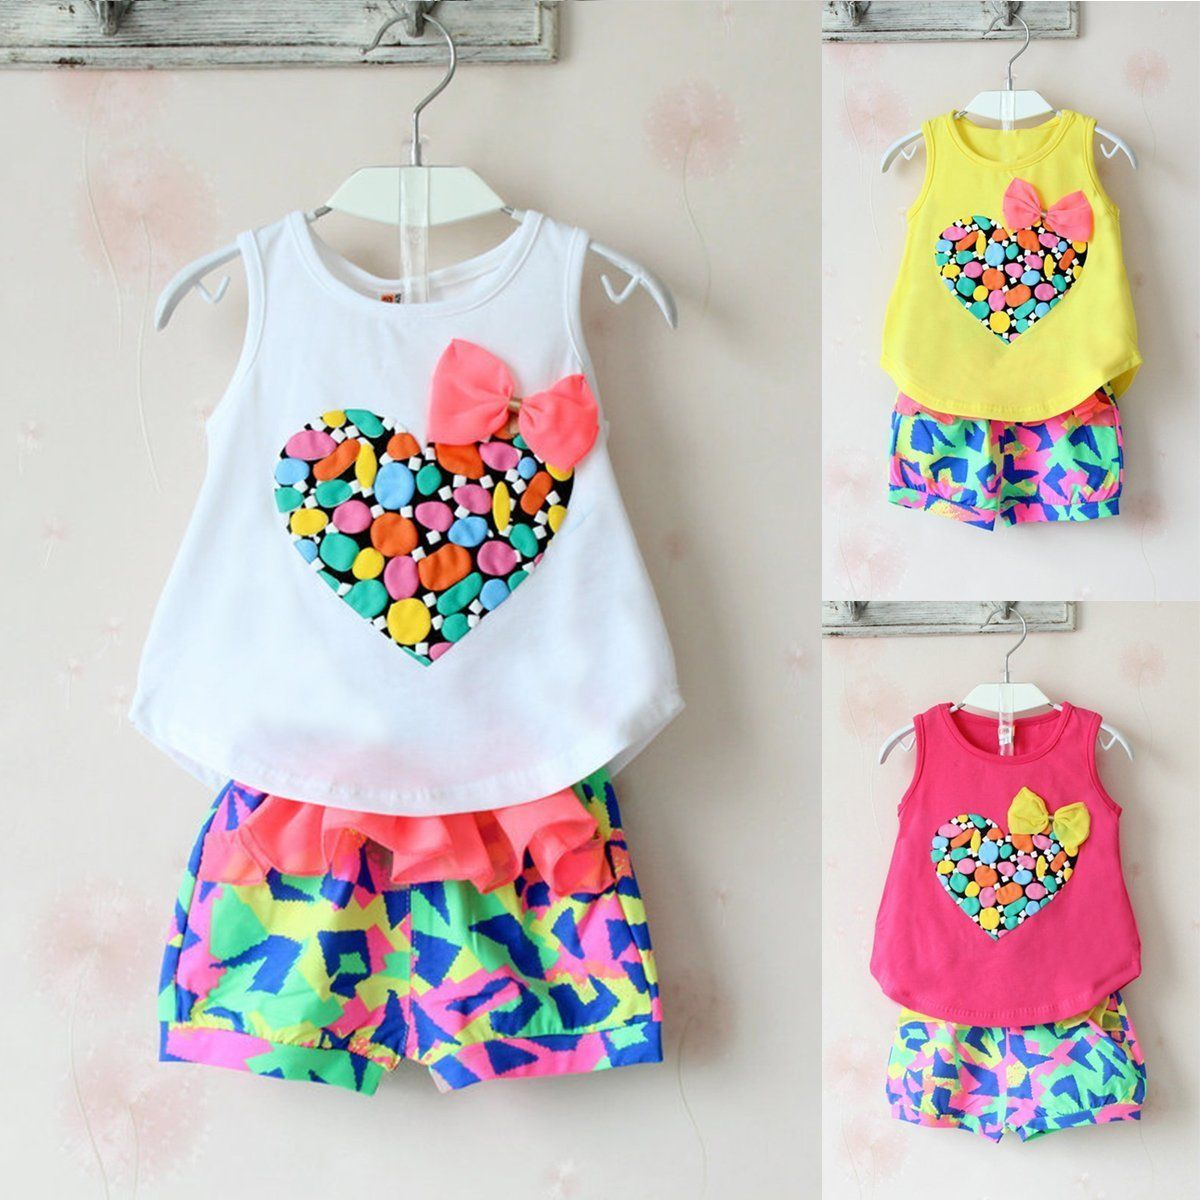 cfbb245c16fa2 2Pcs Toddler Kids Baby Girls Summer Clothes T-Shirt Tops+Shorts Pants Outfit  Set #ebay #Fashion